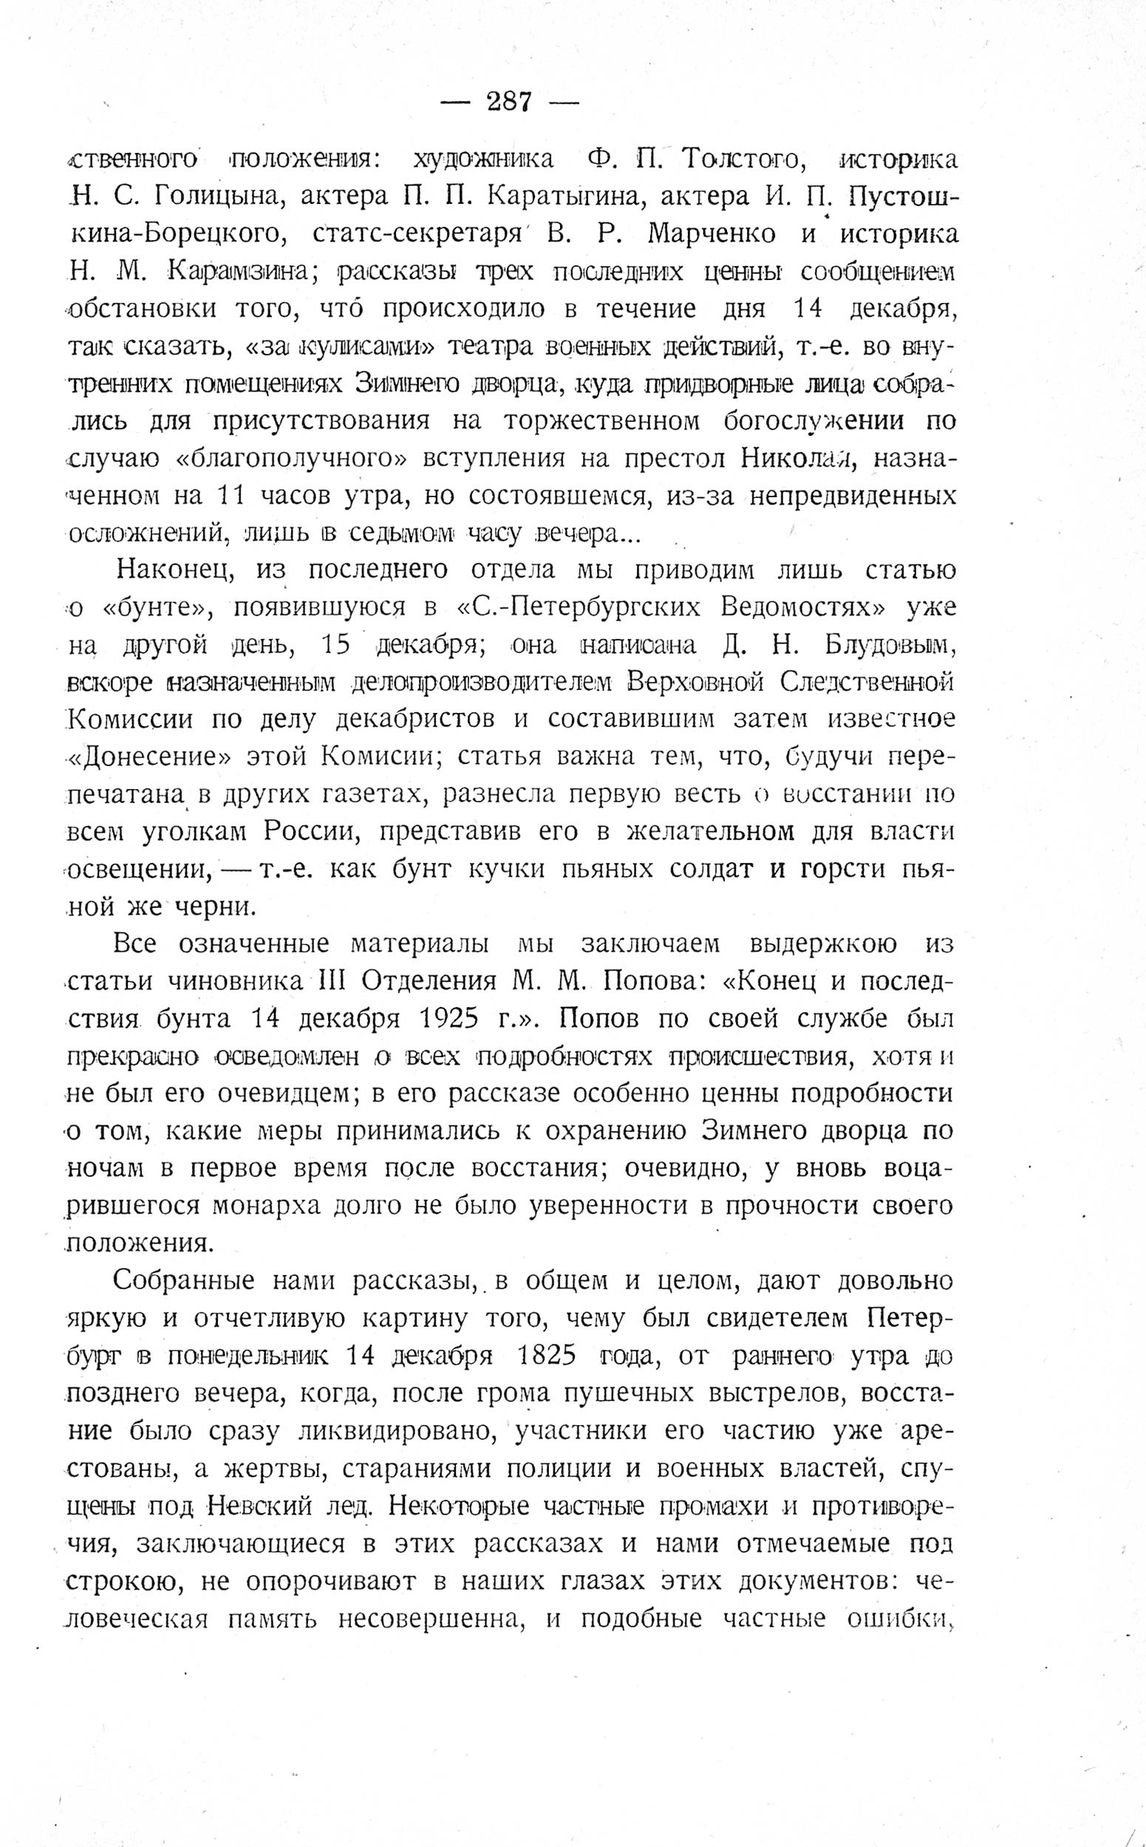 http://elib.shpl.ru/pages/625870/zooms/7